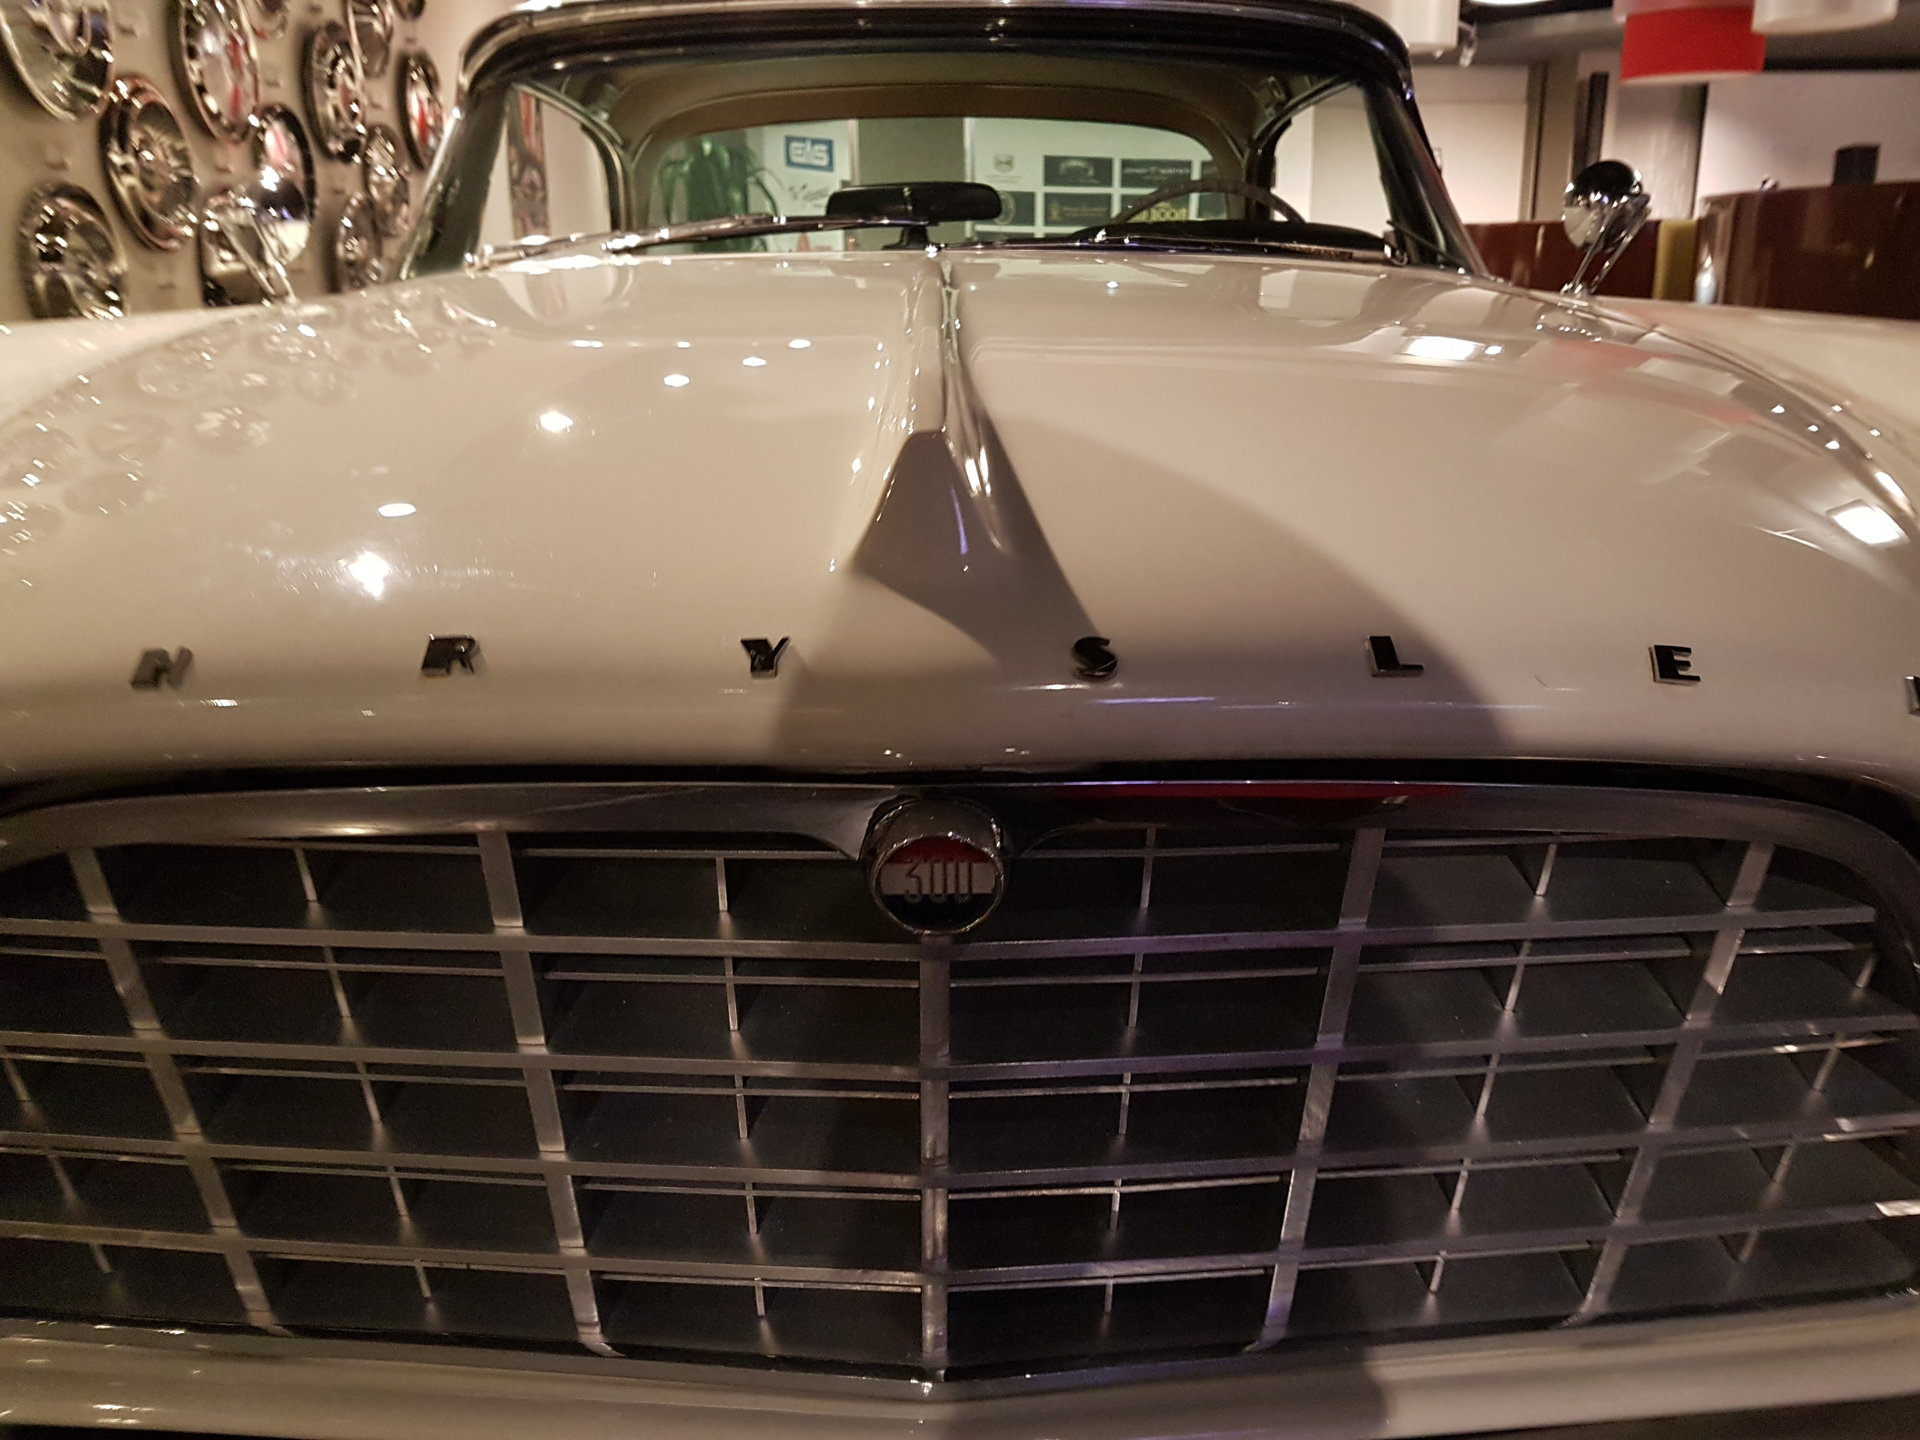 20170428_181532 Great Description About 1955 Chrysler 300 for Sale with Inspiring Images Cars Review